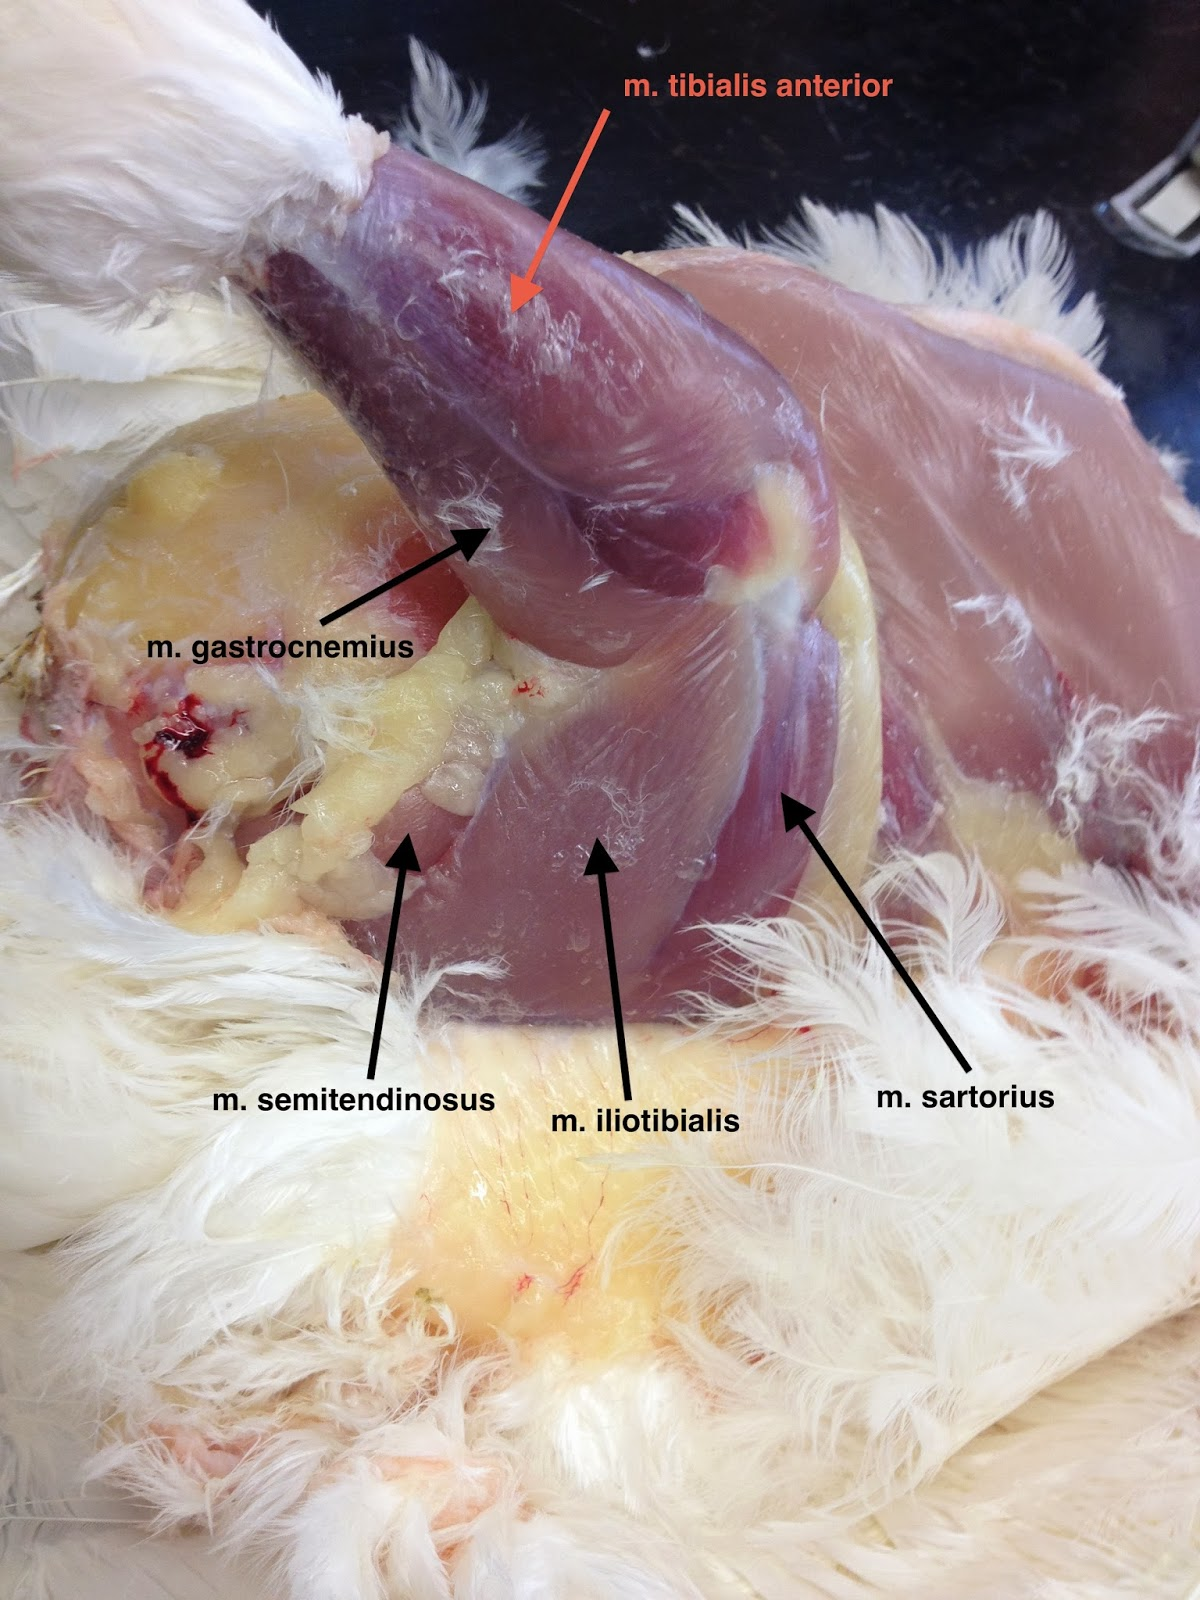 Animal Science Chicken Dissection Musculature Wing Anatomy Diagram The Body Abdominal Muscles